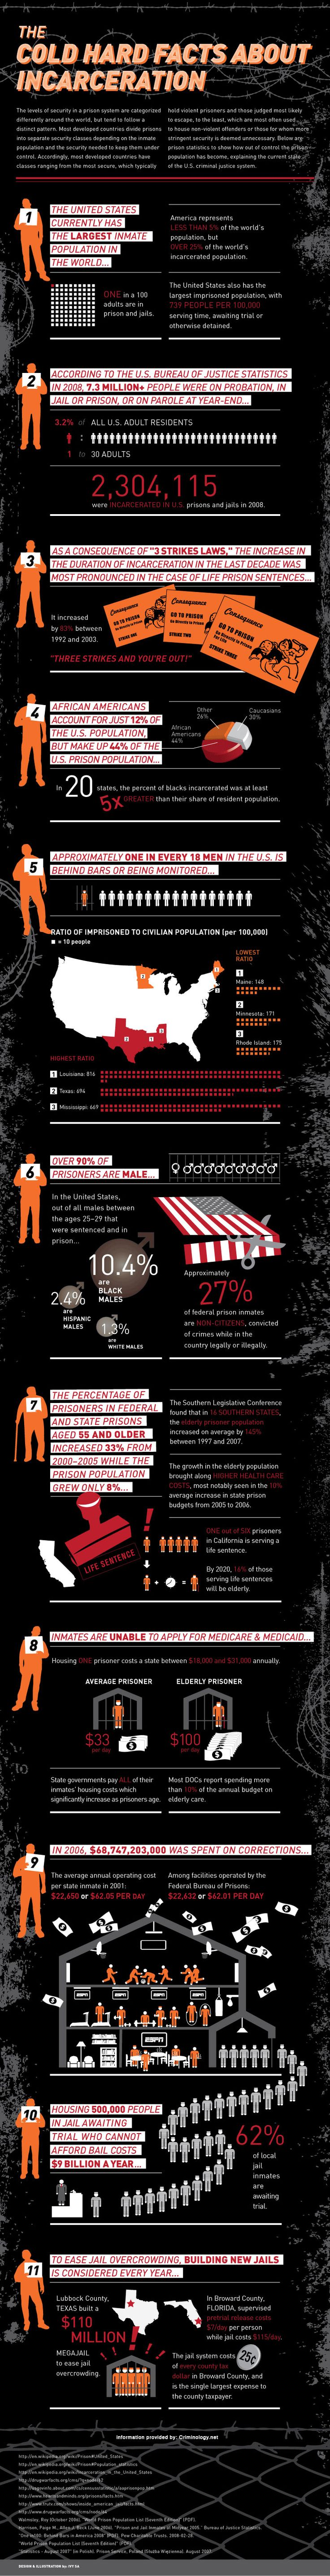 Infographic: The Cold Hard Facts about Incarceration